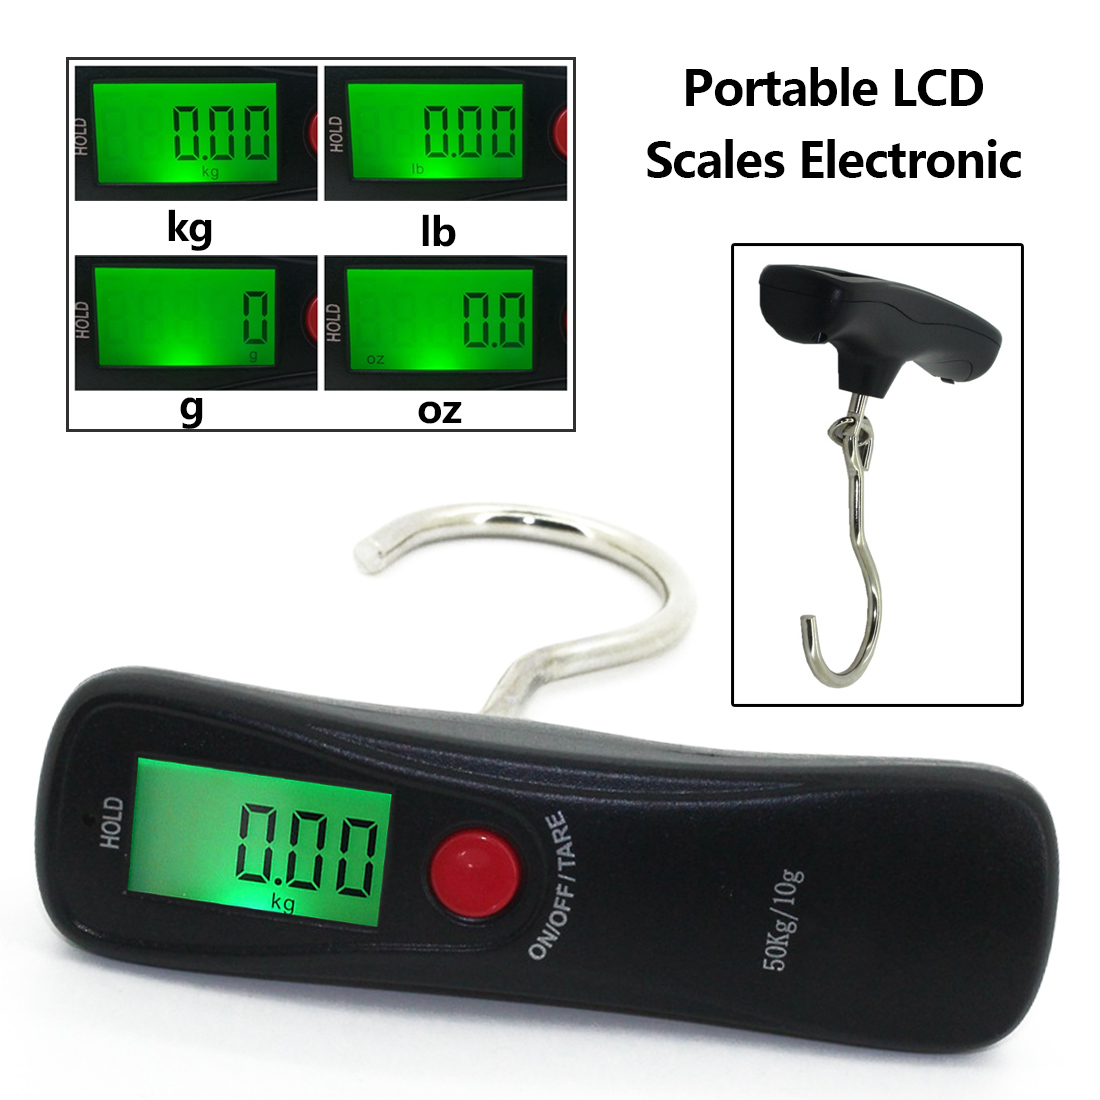 Accurate weight measurement Electronic scale 50kg portable LCD display hanging kitchen weights hand scale Fishing hook scales useful portable 50kg lcd display digital hanging scales electronic weight fishing hook scale black kitchen scales